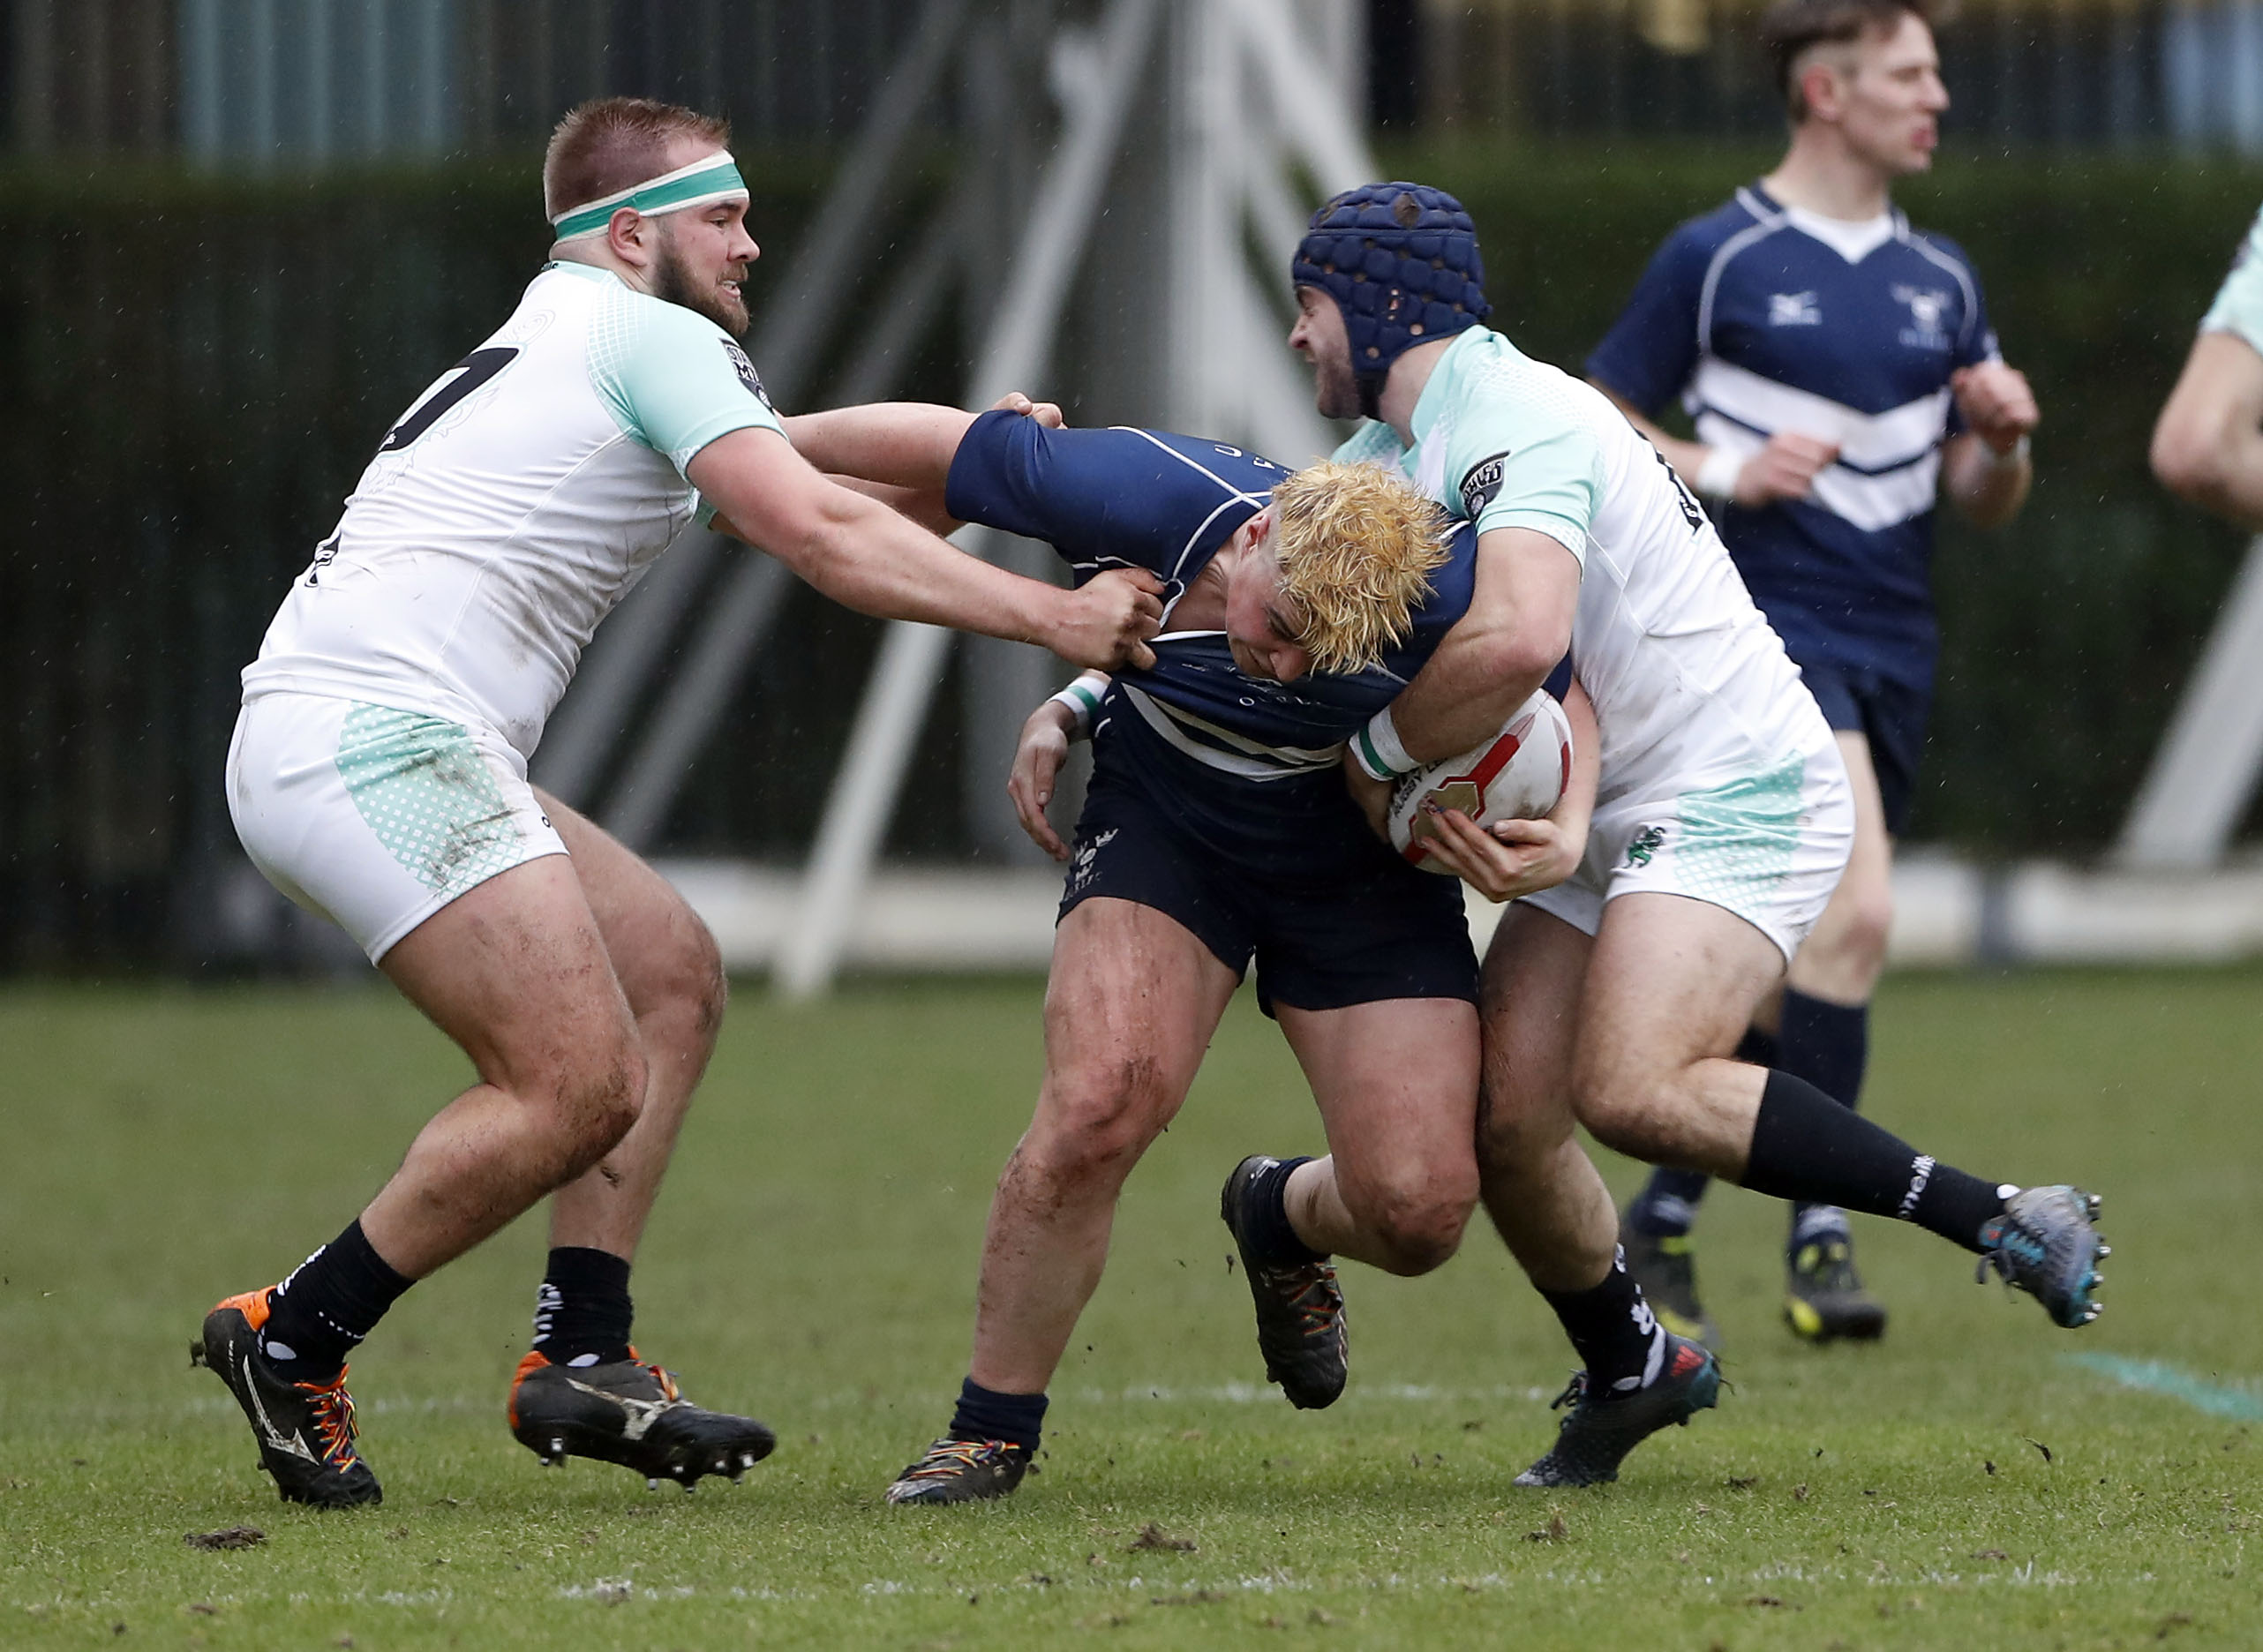 Action during the RCMA Varsity Rugby League game between Cambridge University and Oxford University at the HAC Ground, Moorgate, London on Fri Mar 9, 2018